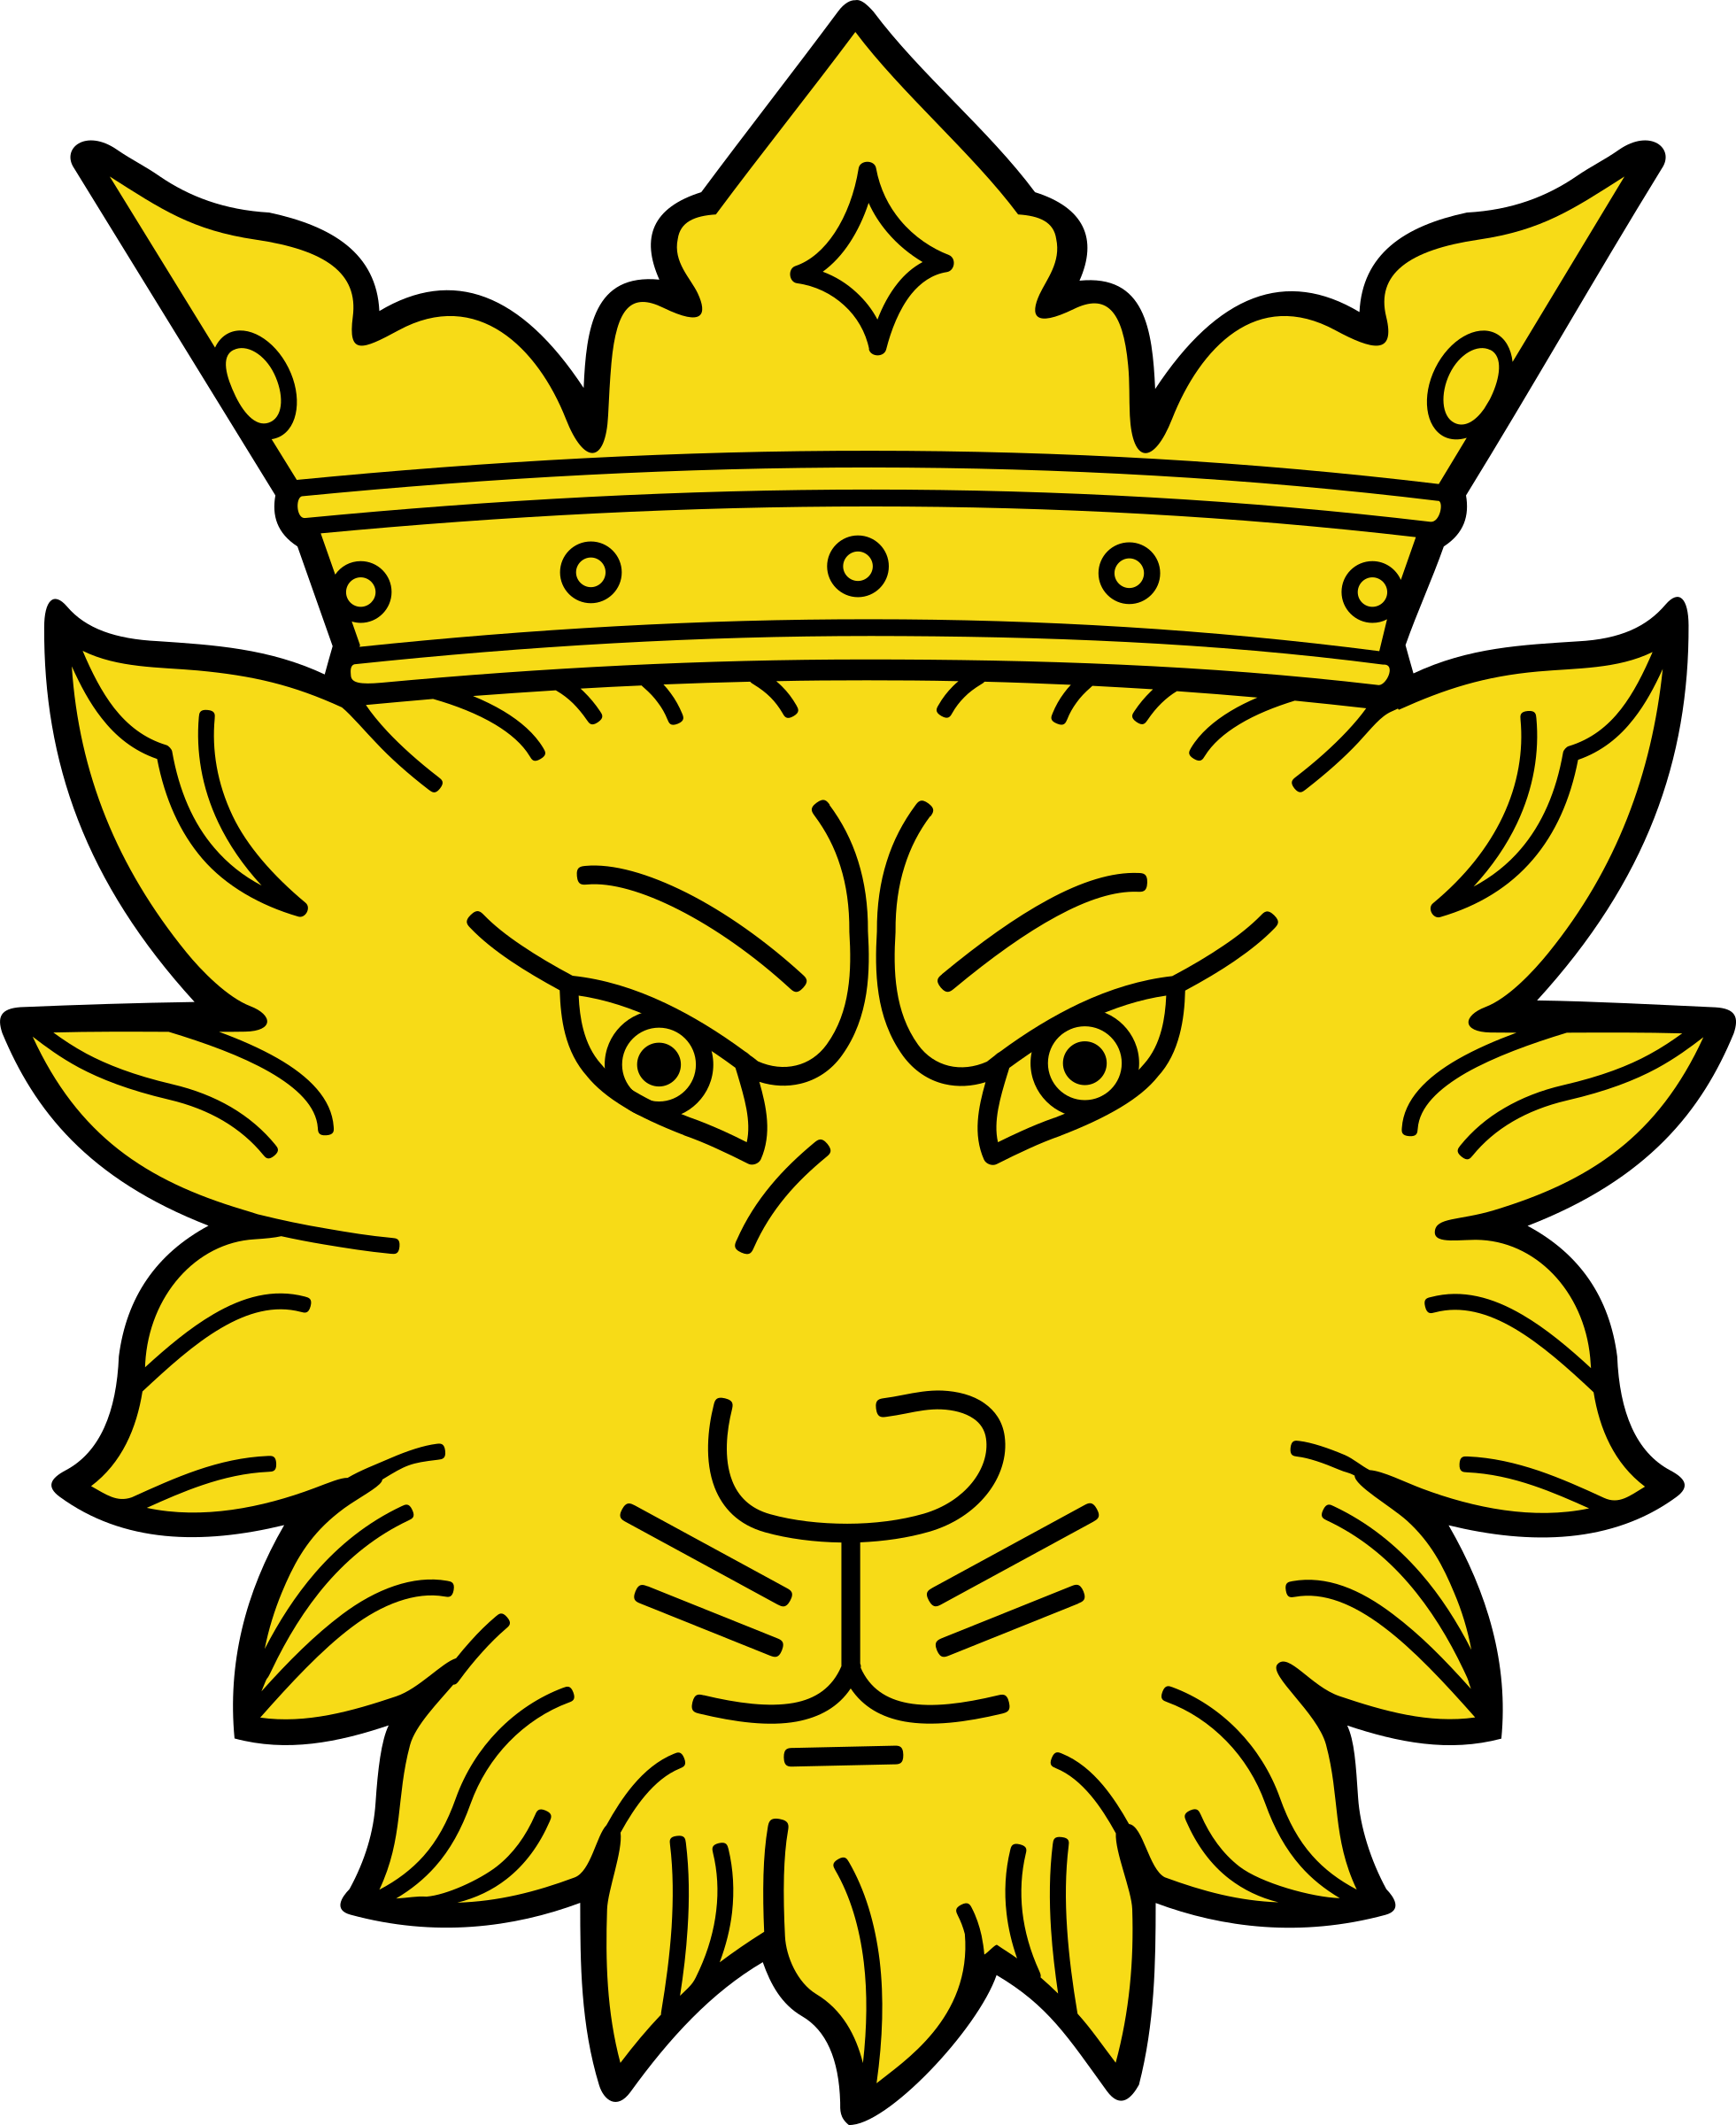 Leopard head with crown by Firkin